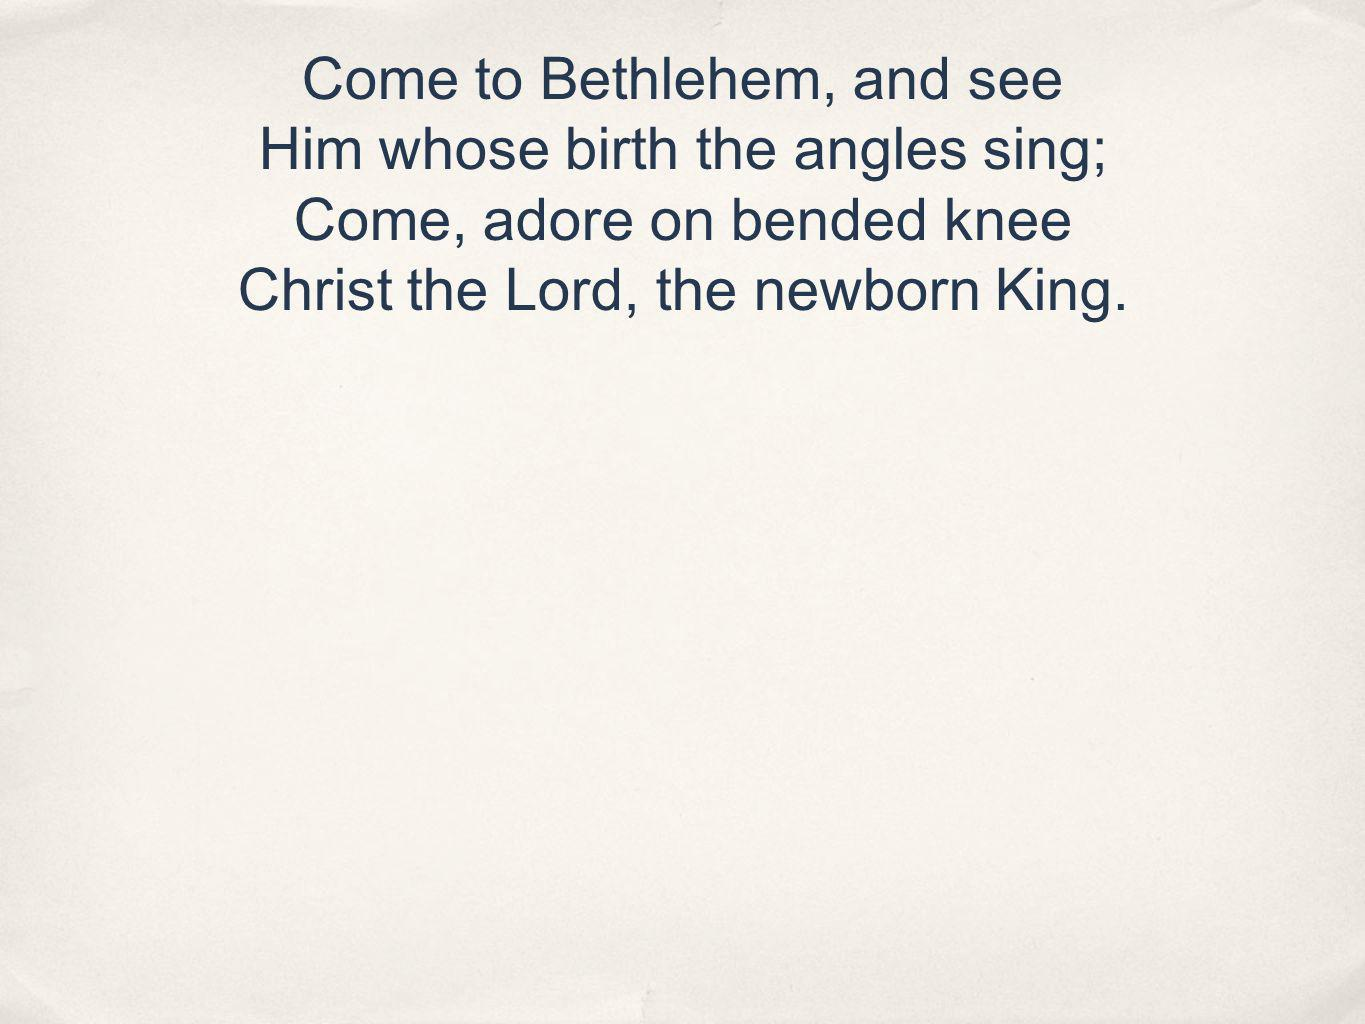 Come to Bethlehem, and see Him whose birth the angles sing; Come, adore on bended knee Christ the Lord, the newborn King.